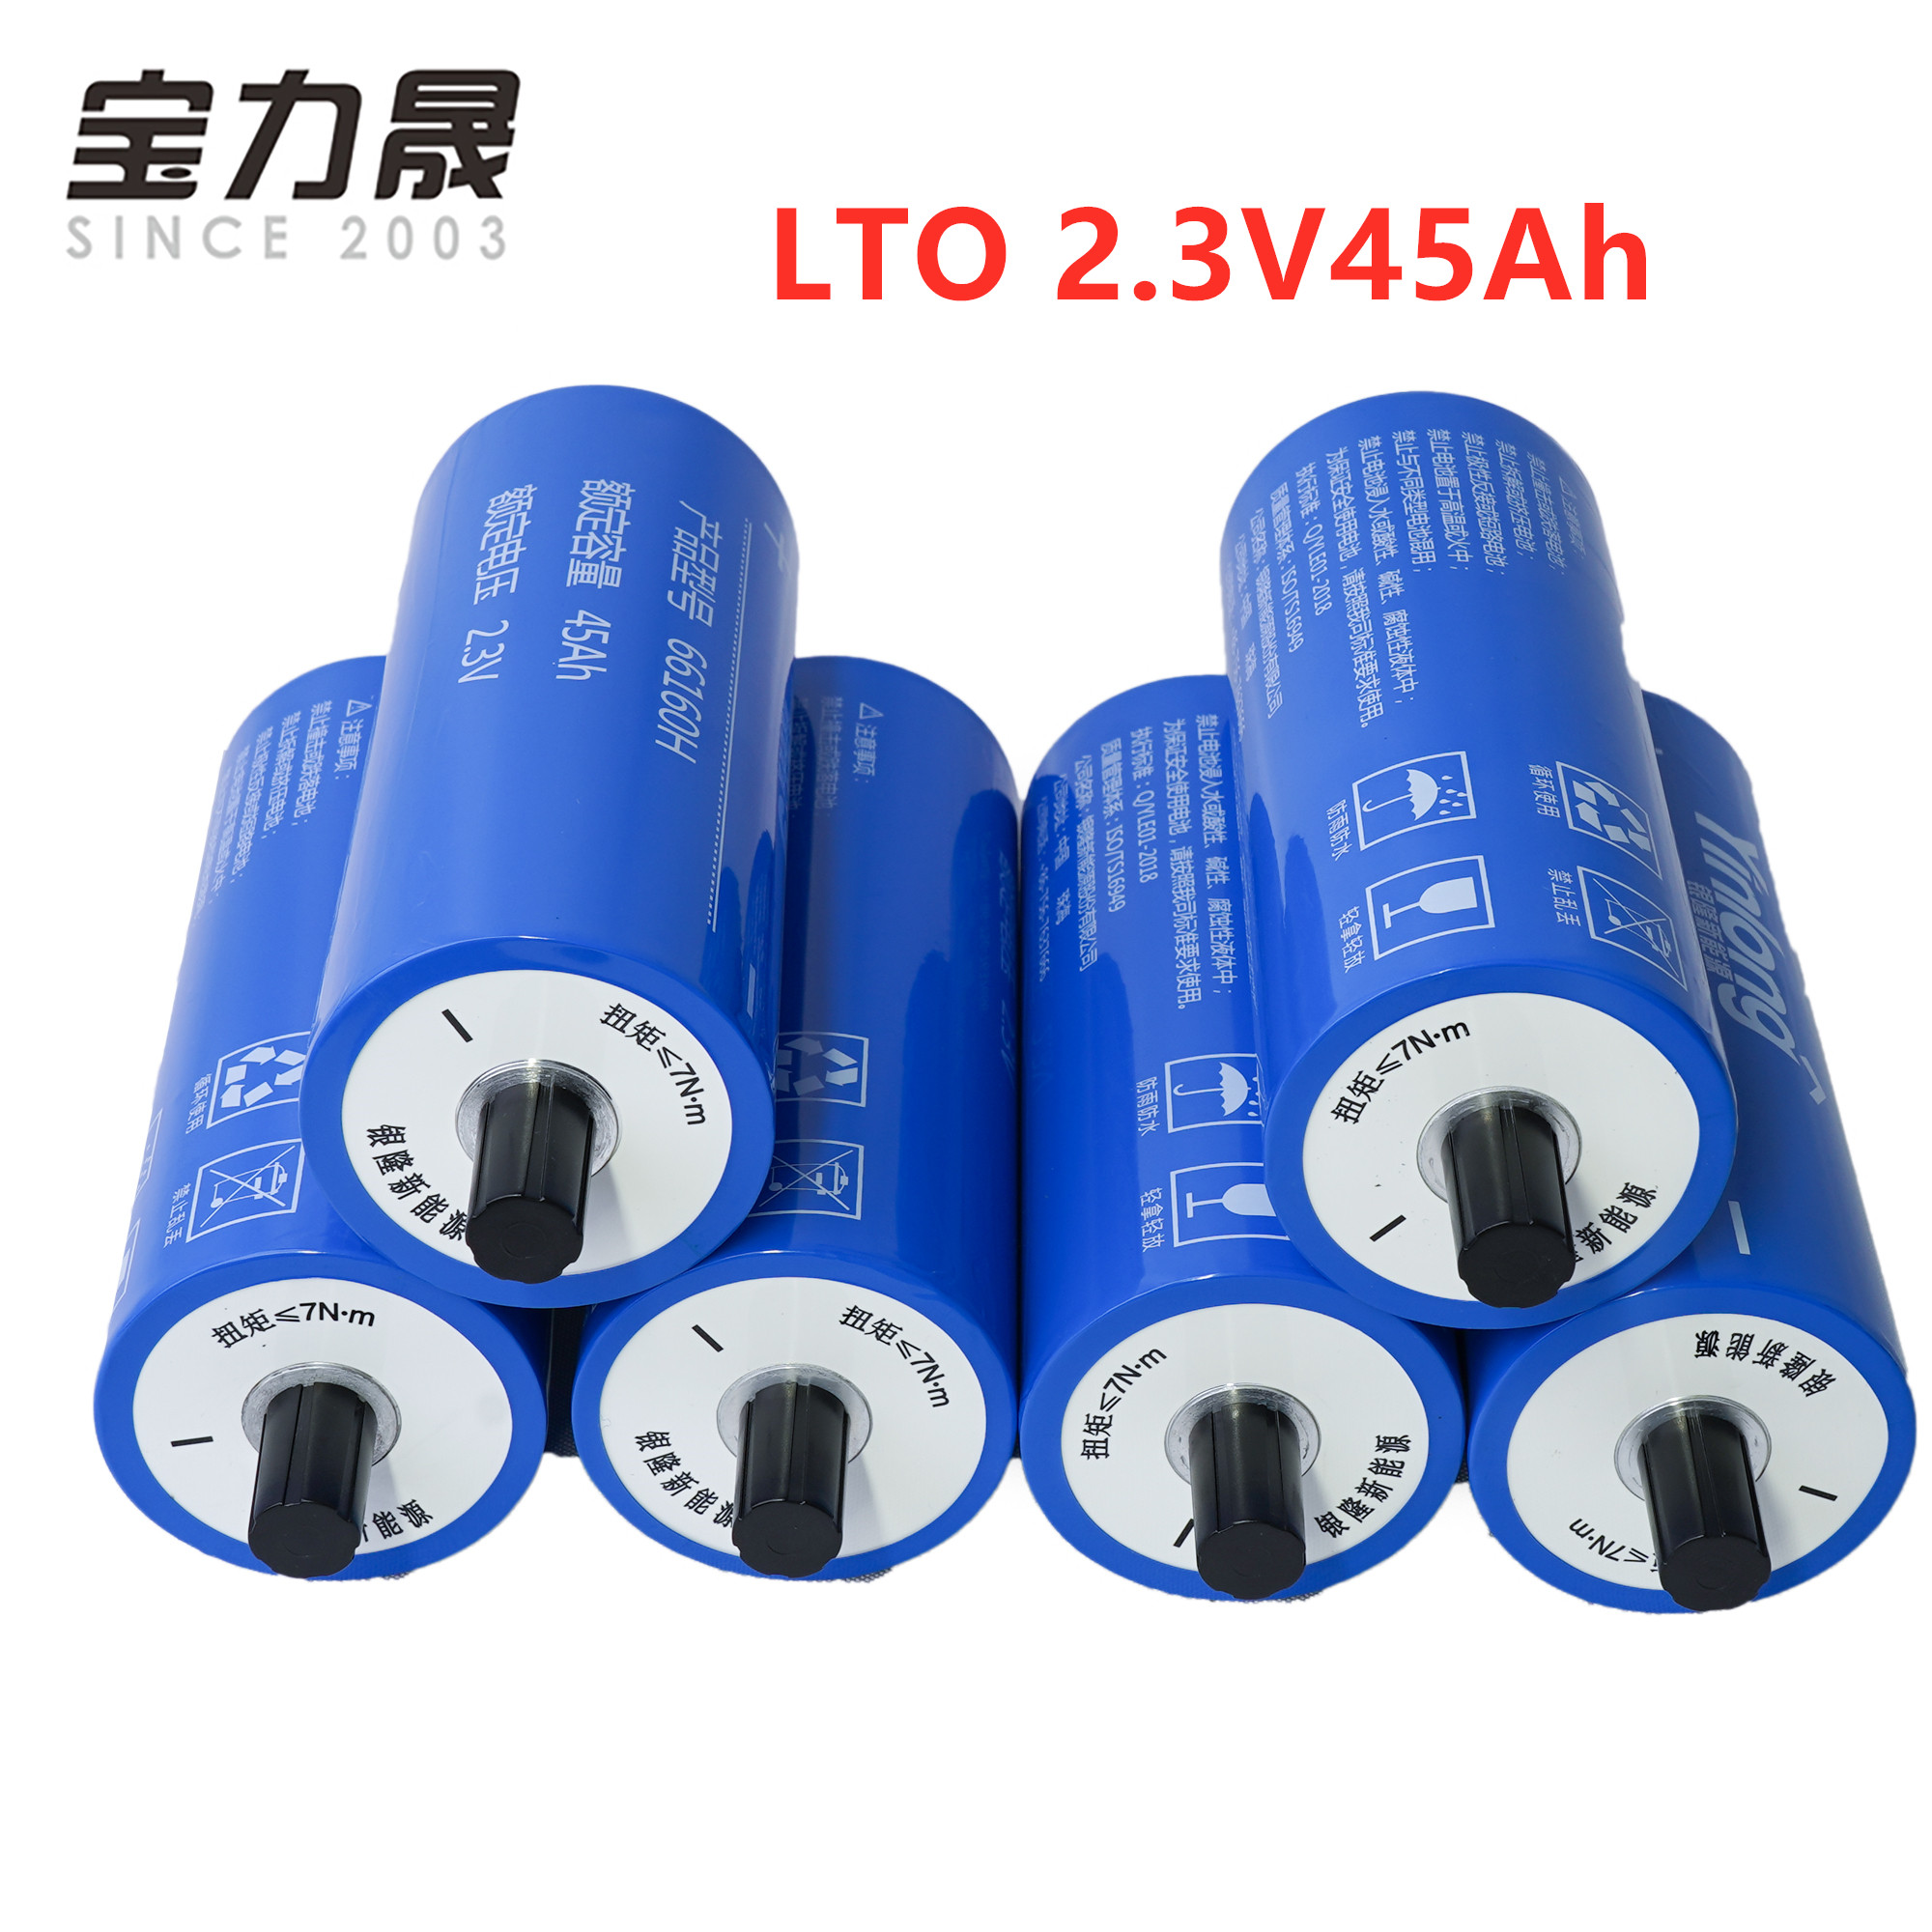 2.3V 2.4V LTO 45AH  6S 12V45AH Original YINLONG 66160H Lithium Titanate Battery Cell 2.4v 10C 450A For 12v 14.4v EV Golf Cart